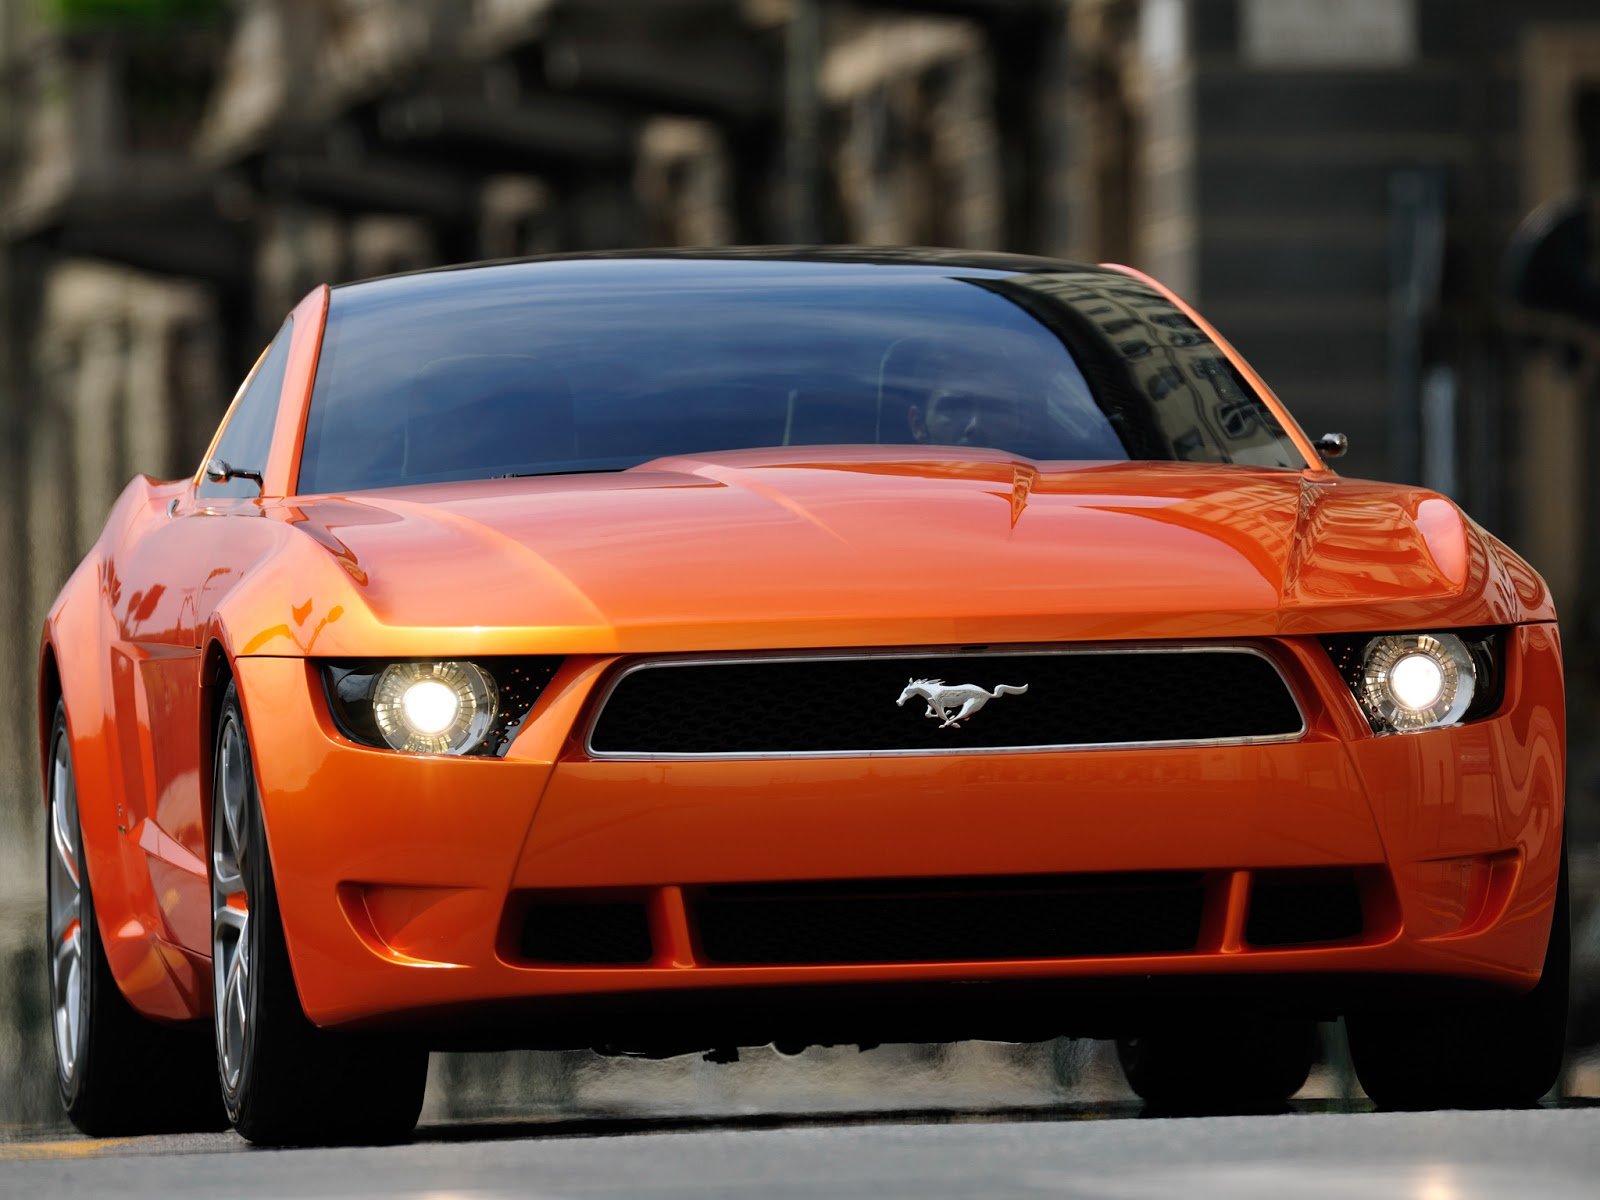 mustang mature singles If you're open to church try some of the singles groups there in ok city  oklahoma city, 15 replies view detailed profiles of: tulsa, oklahoma.